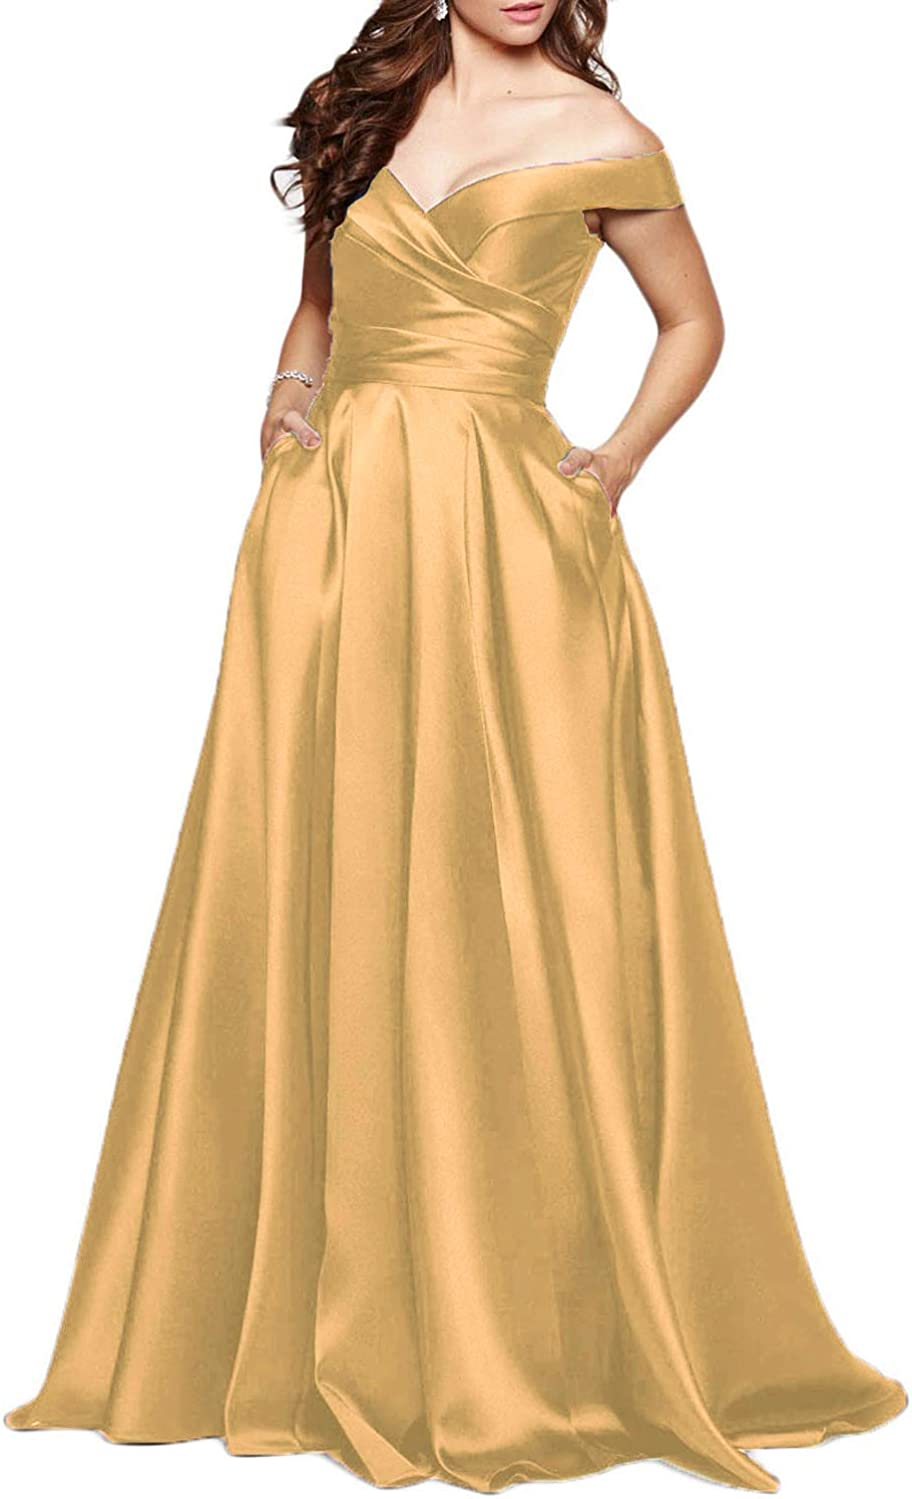 Scarisee Long Off Shoulder Prom Evening Dress Pocket Formal Bridesmaid Gownsa31